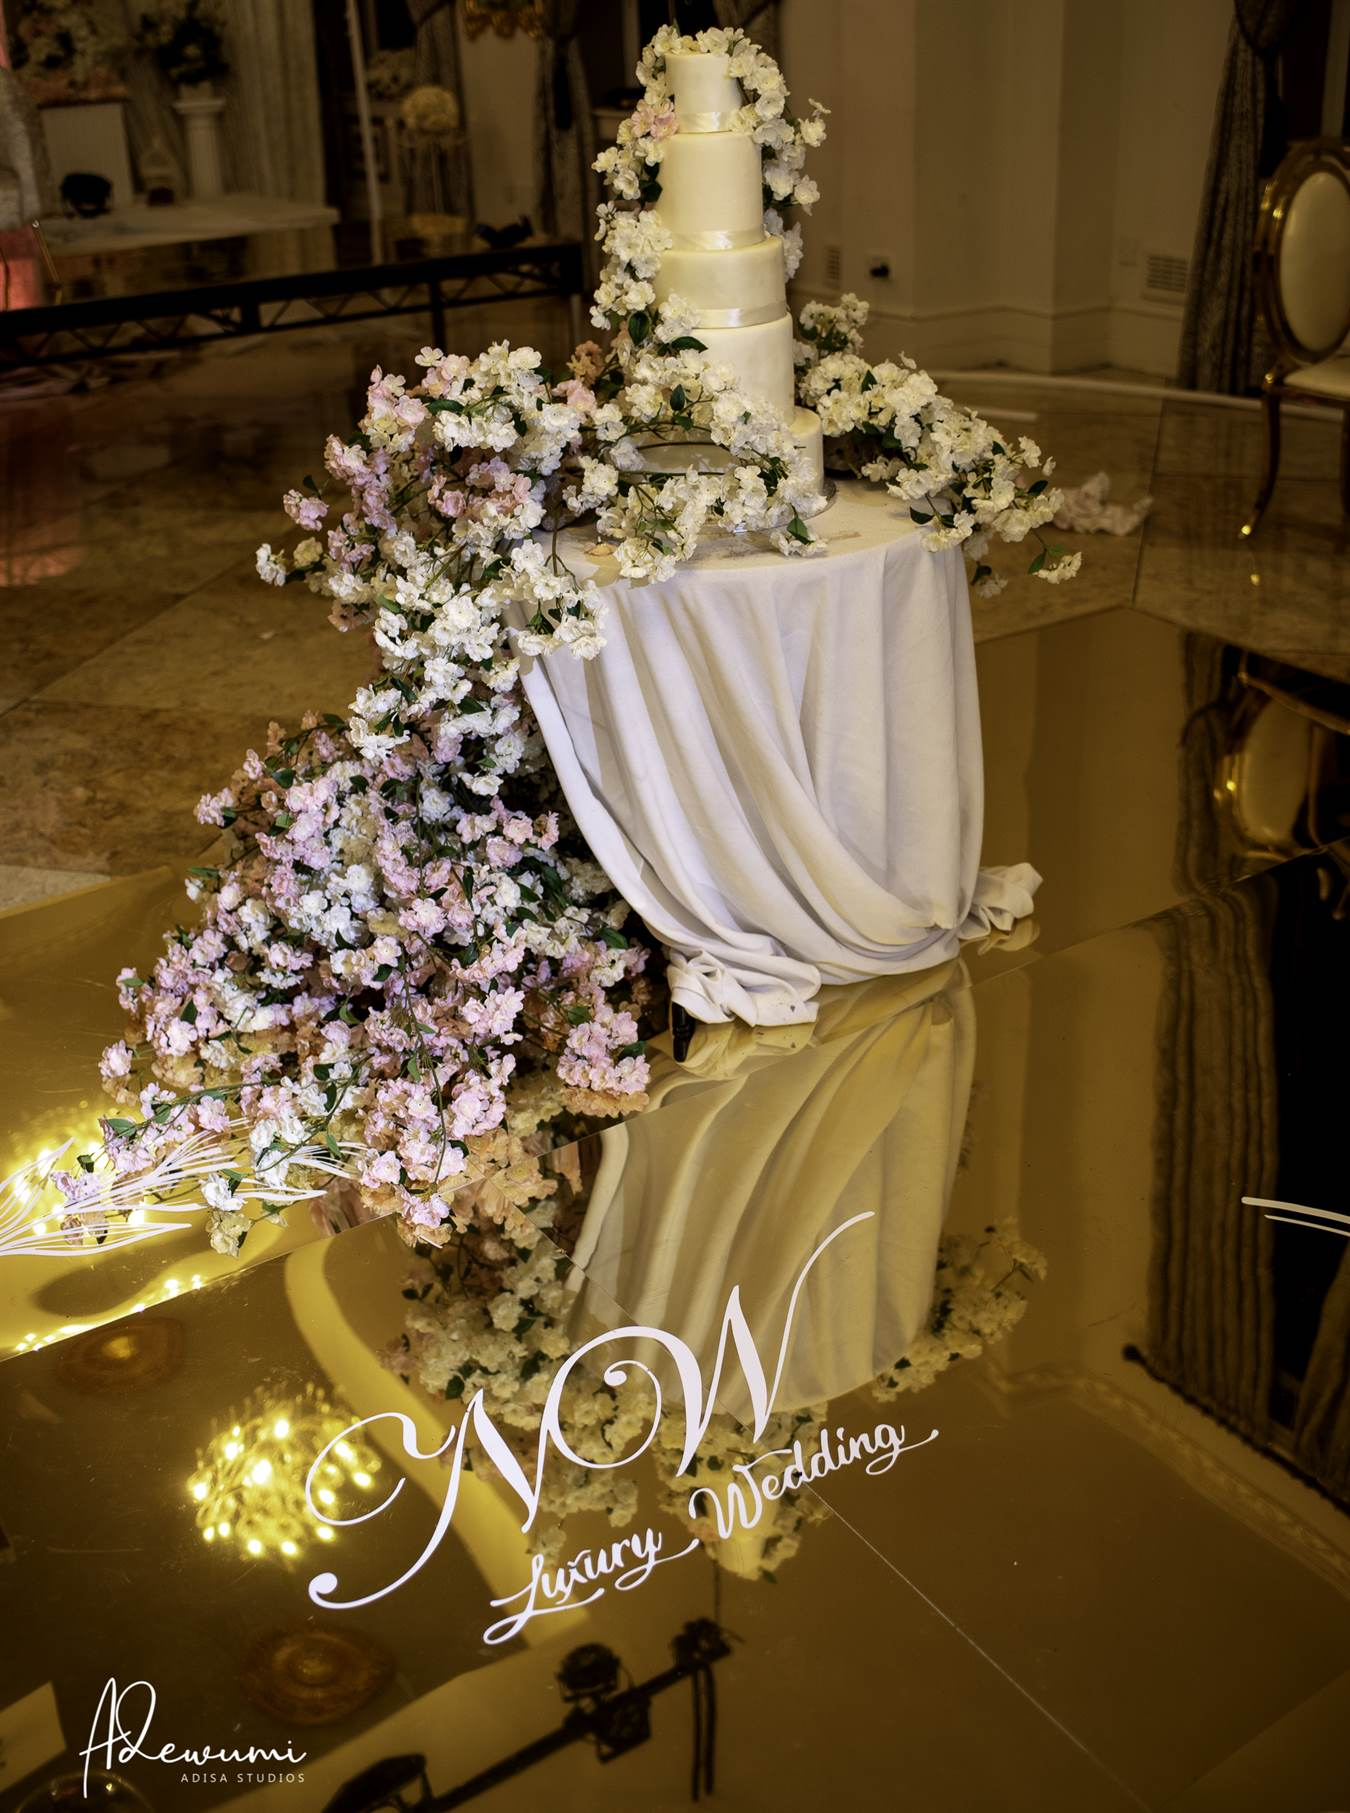 Foreps Decor Events Styling and Wedding Decorator - Black Owned Venue Decorator London and Manchester